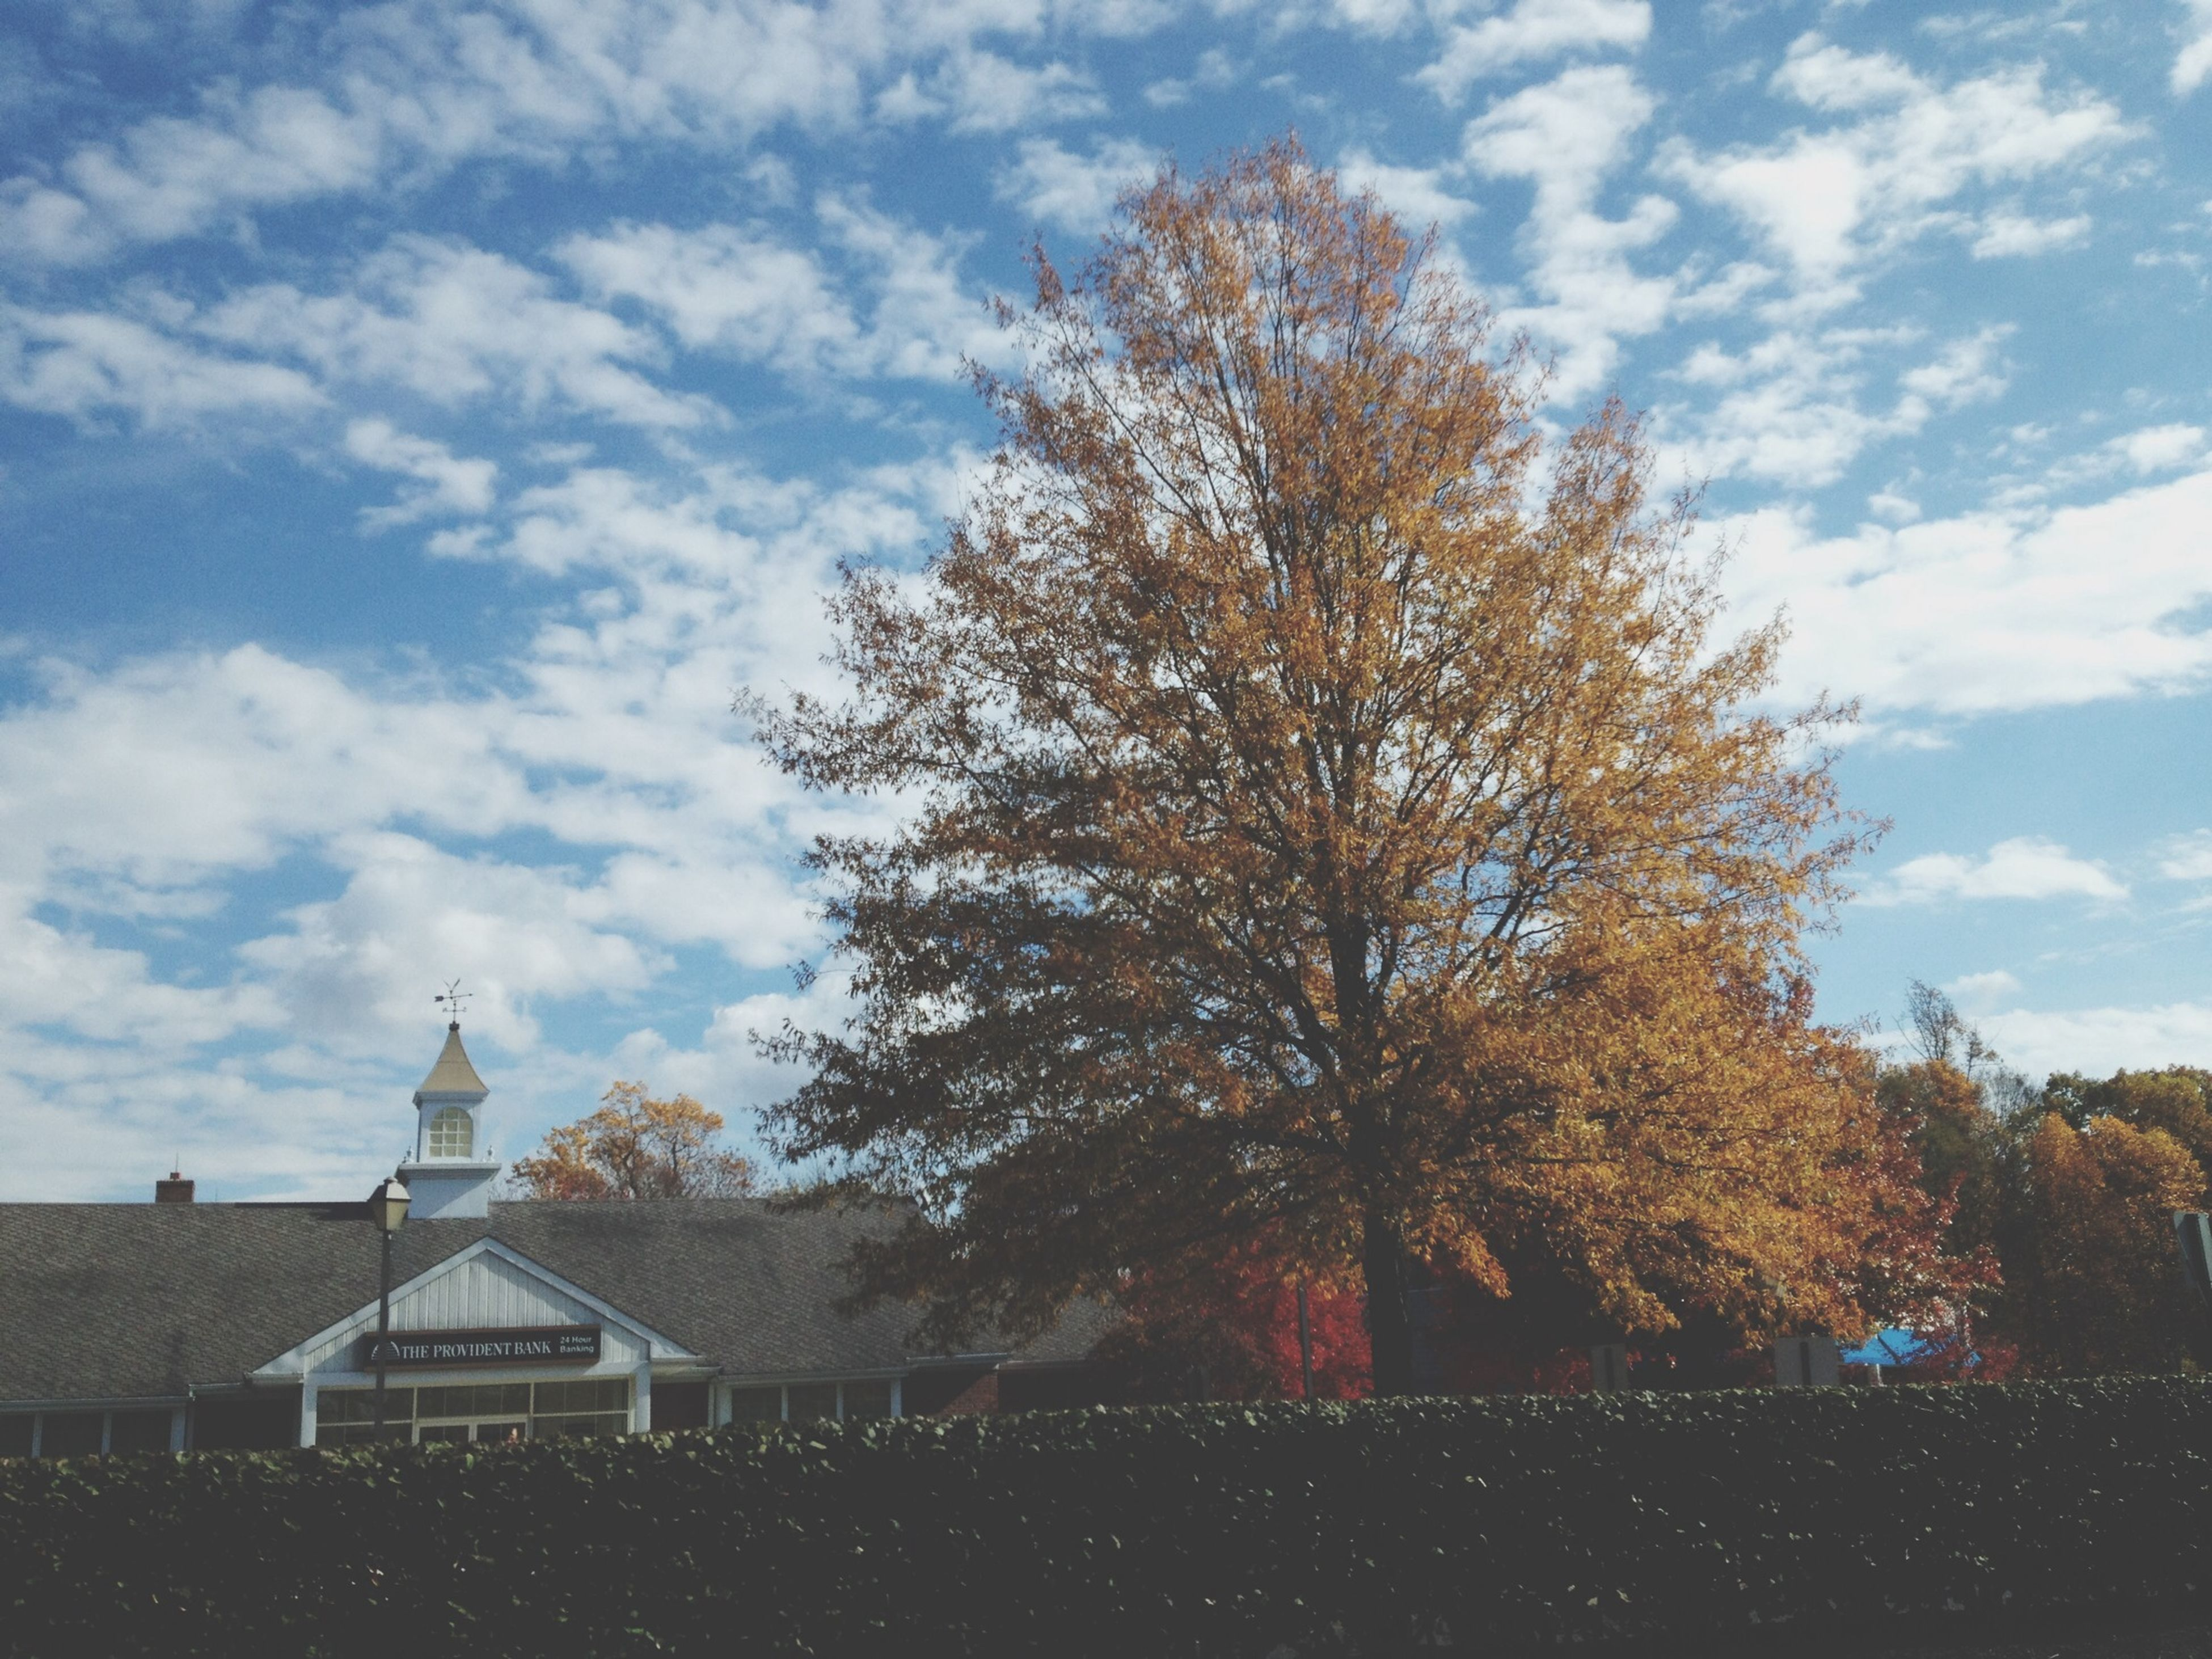 tree, sky, building exterior, architecture, built structure, cloud - sky, cloud, cloudy, house, low angle view, place of worship, religion, roof, nature, church, growth, spirituality, day, branch